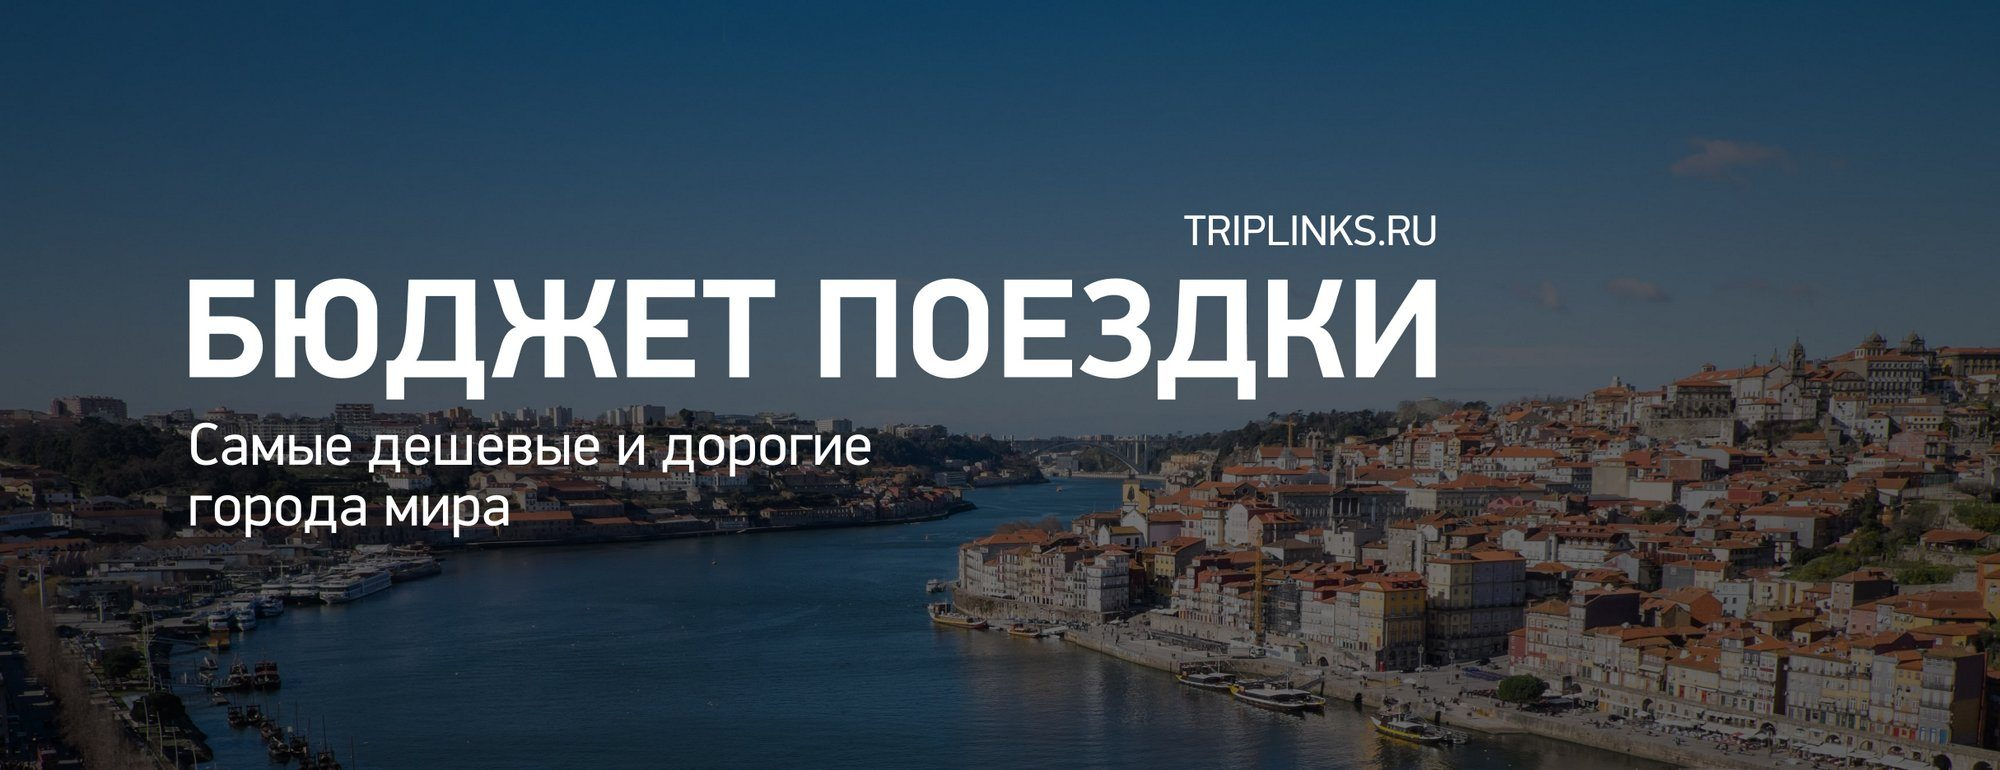 https://triplinks.ru/skolko-stoit/